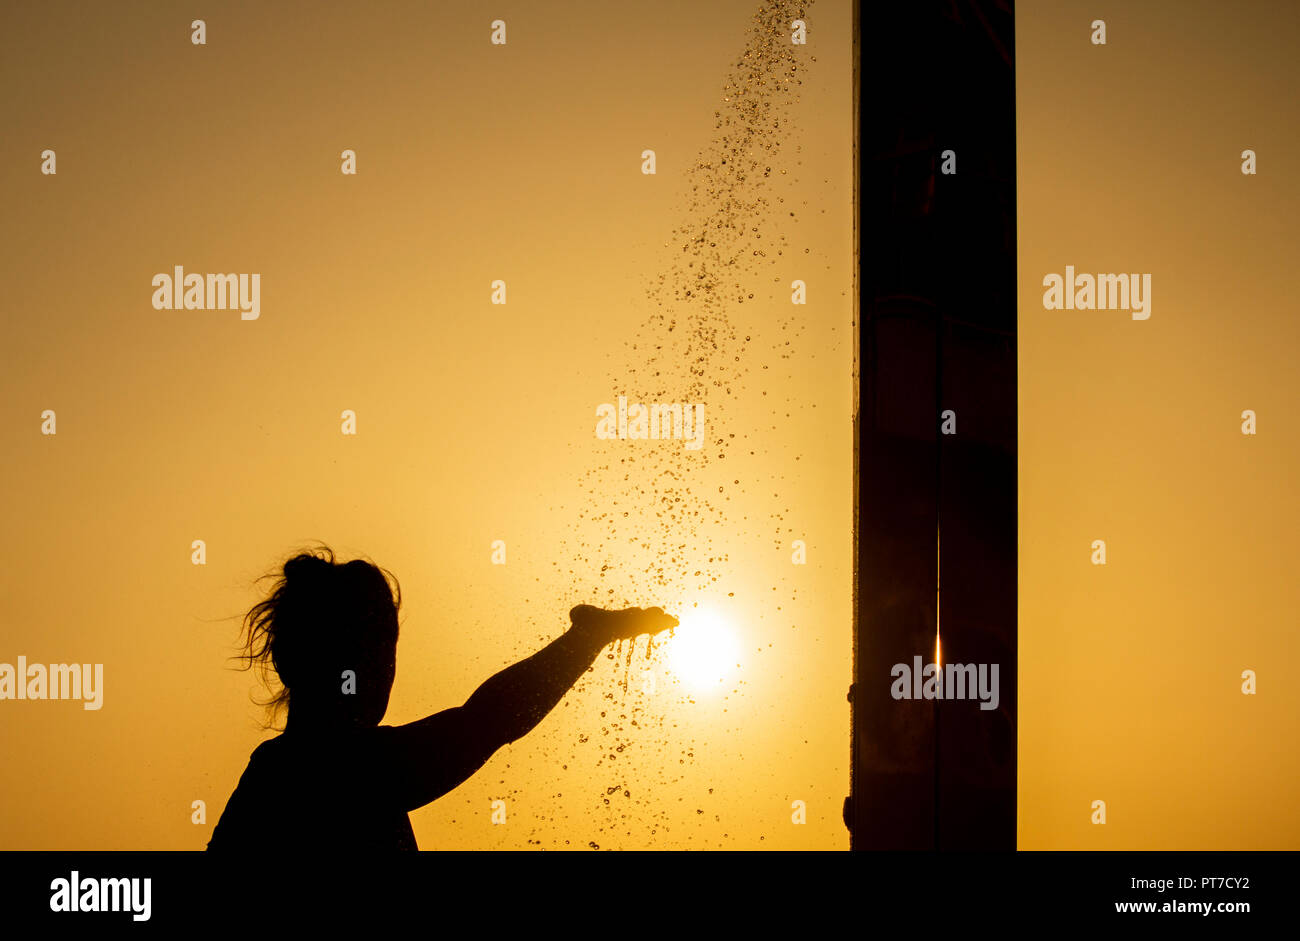 Female jogger cooling down under beach shower at sunrise during heatwave. - Stock Image